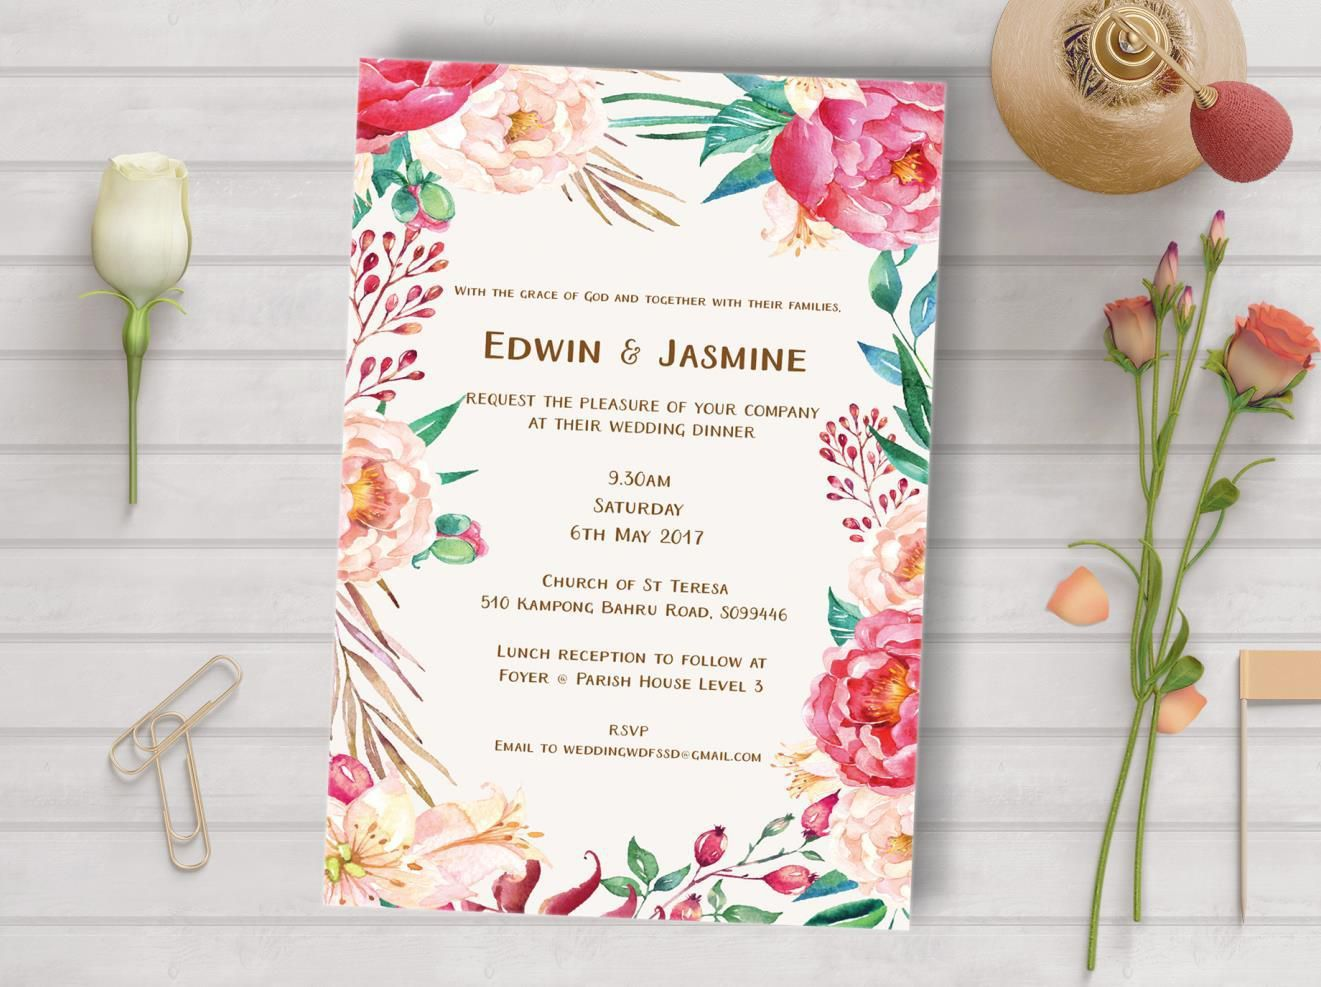 wedding invitation : invitation cards for wedding - Free Invitation ...